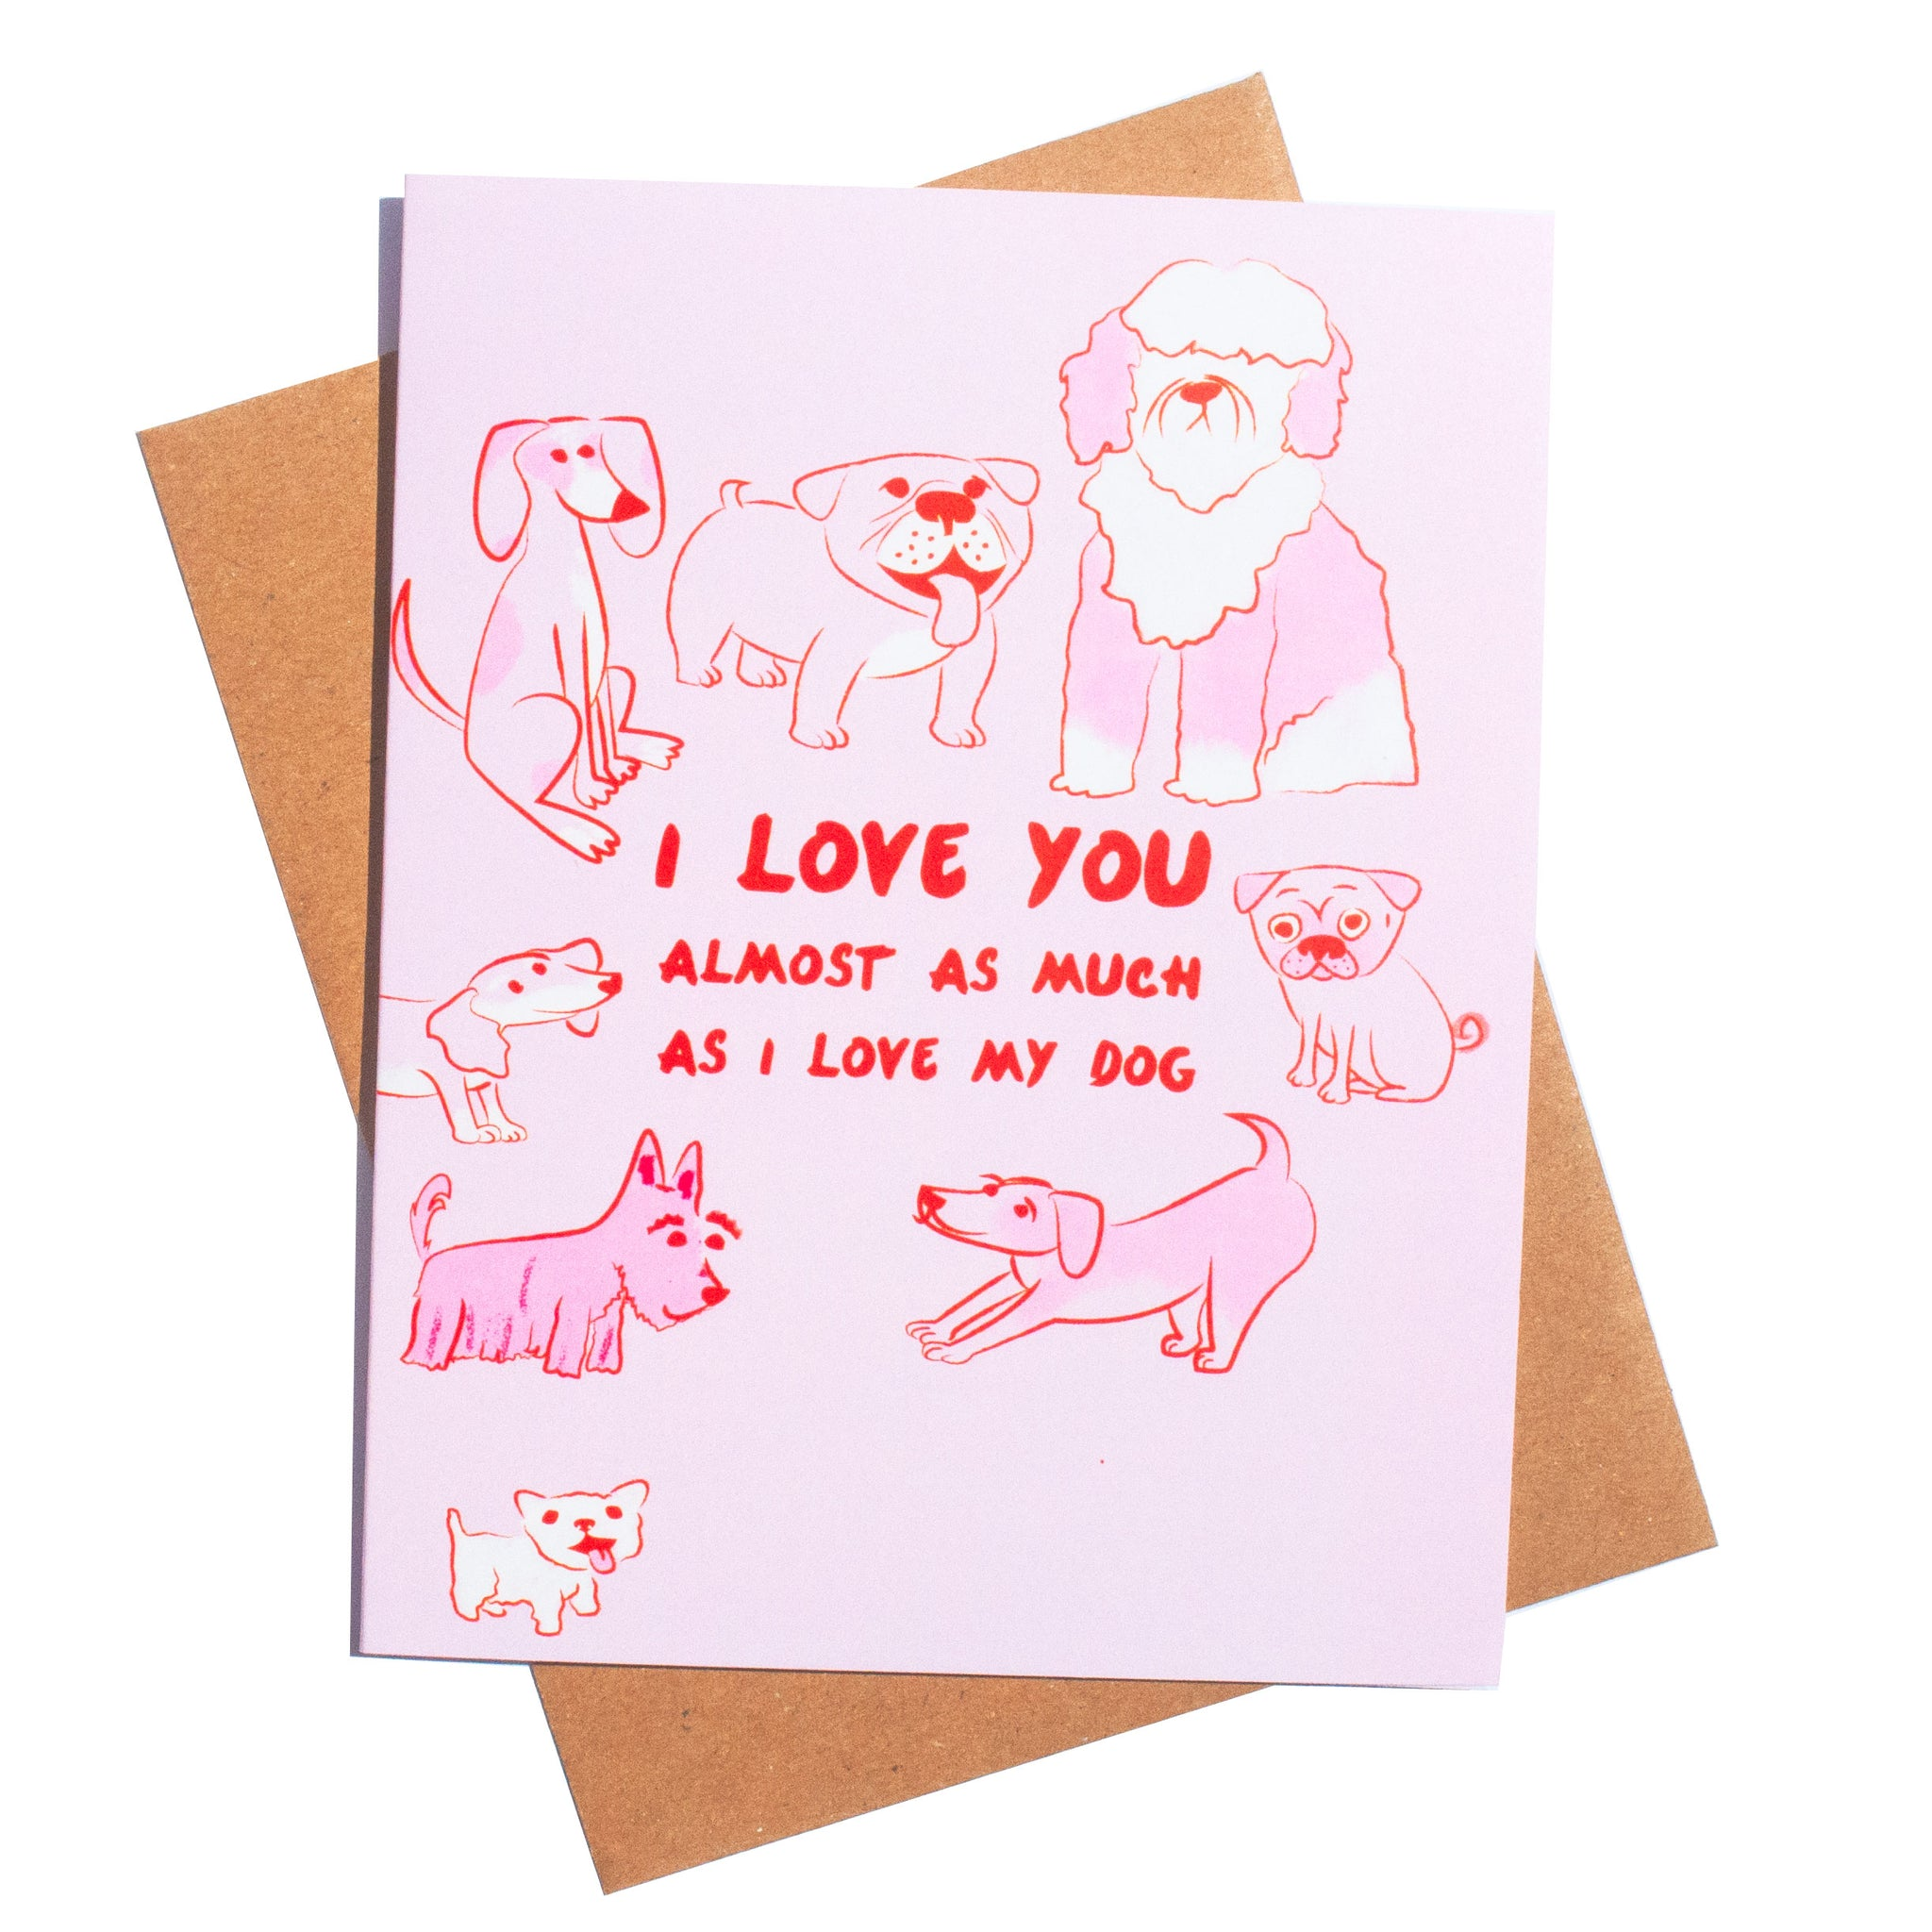 I Love You Almost As Much As My Dog Love Card